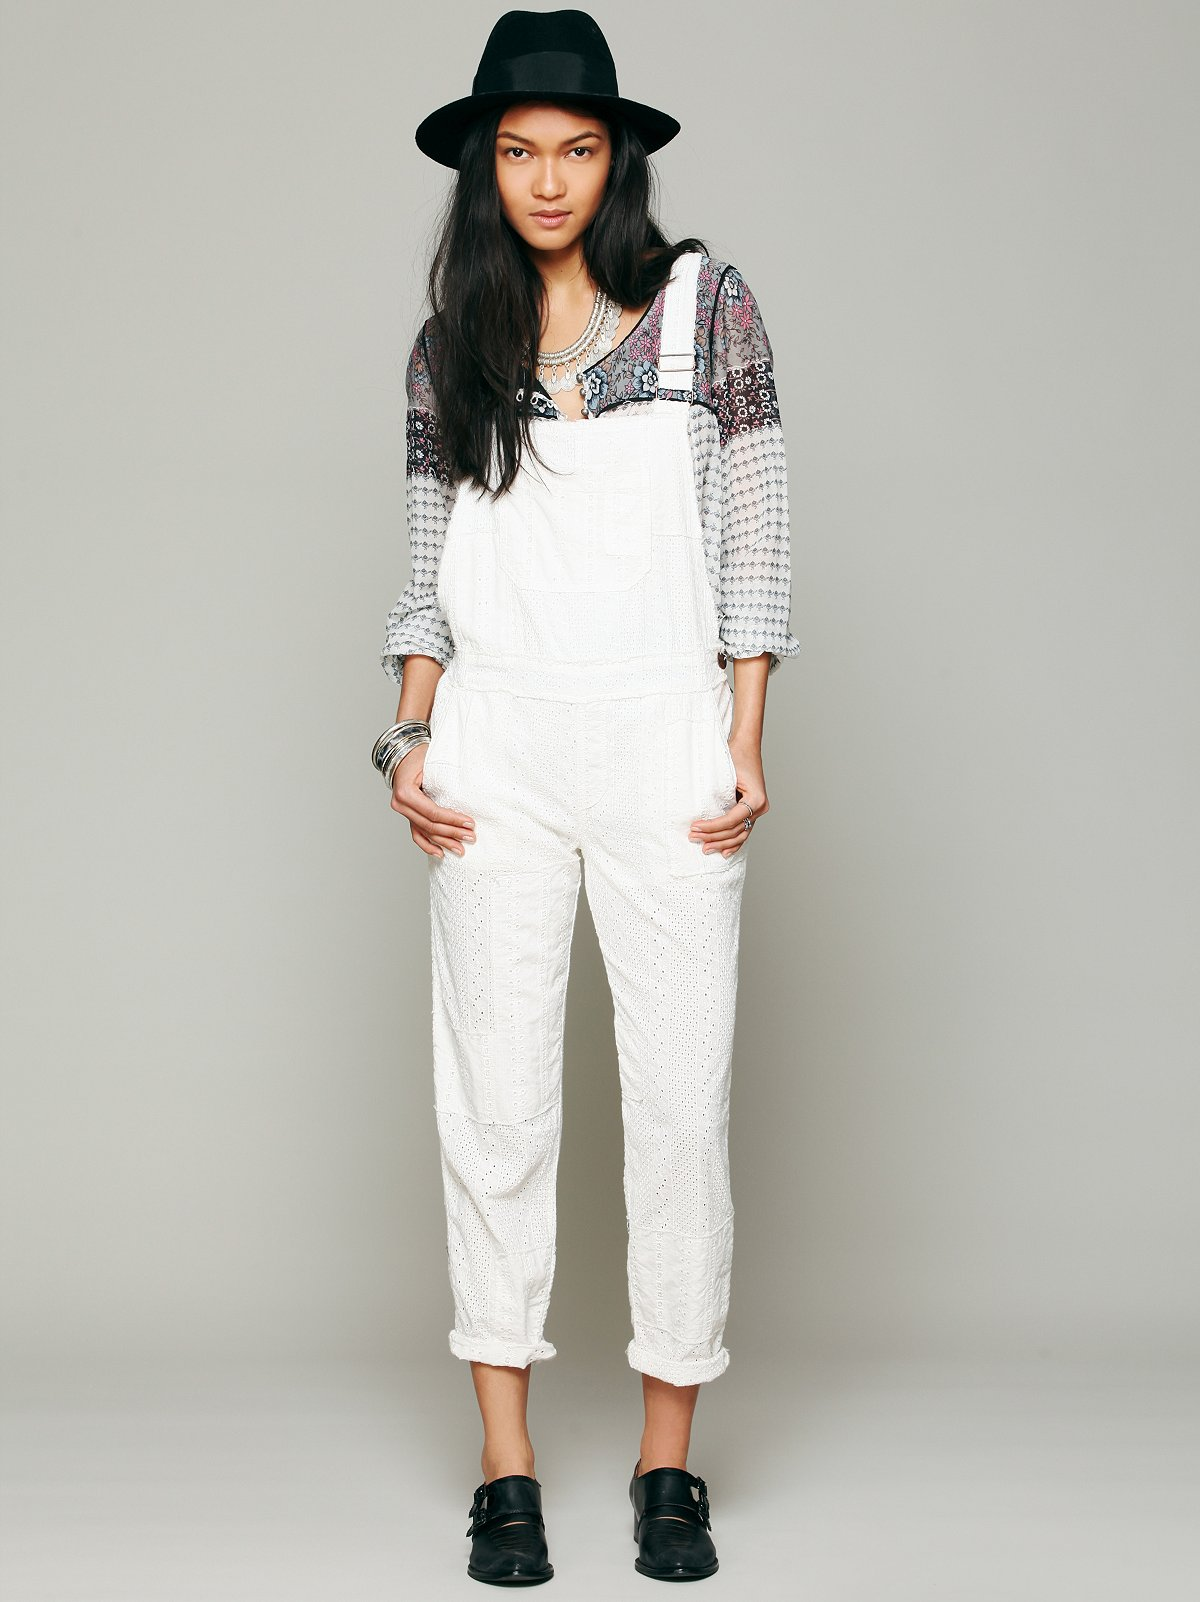 Straight Eyelet Overall